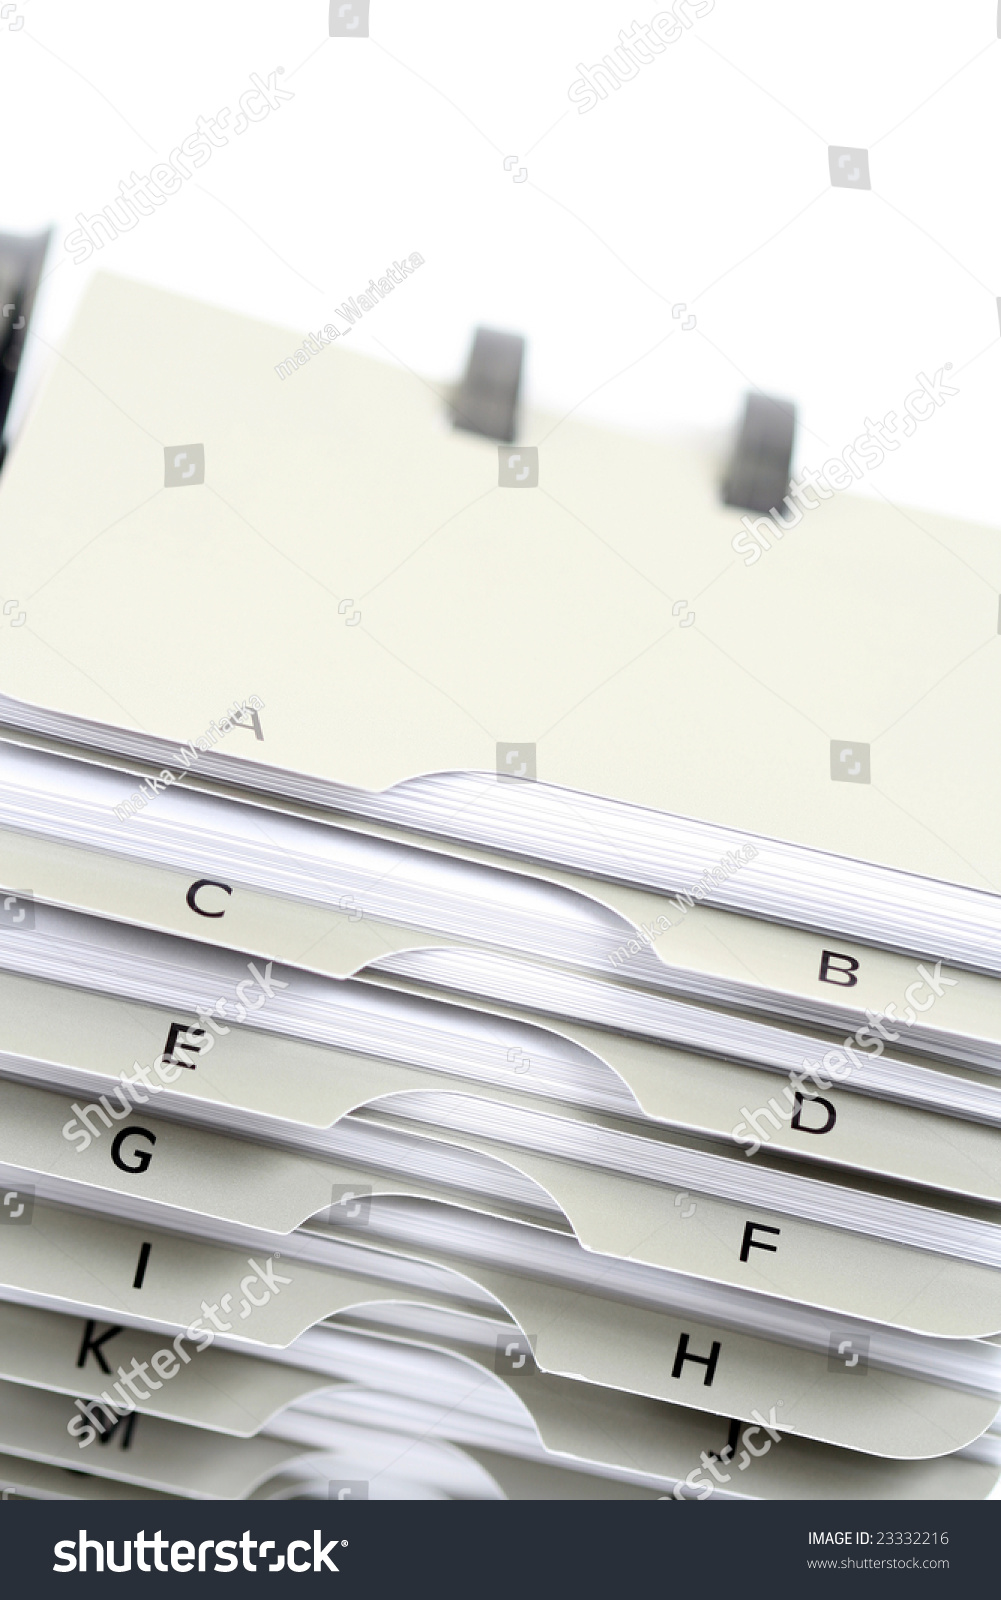 Traditional Business Card Holder On White Stock Photo 23332216 ...